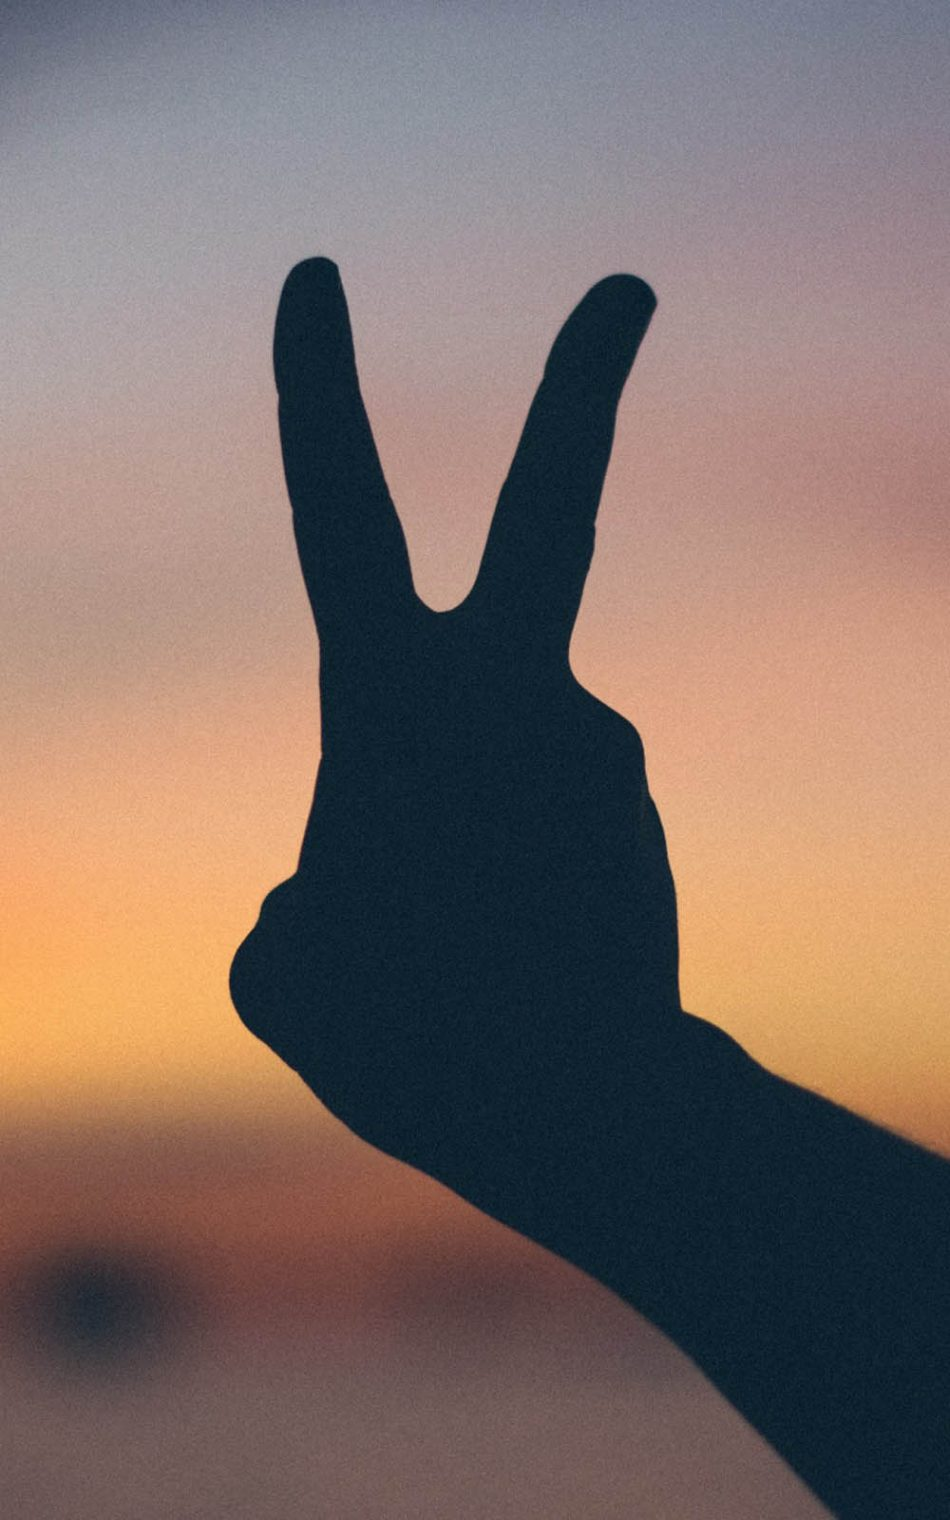 Victory Hand Gesture HD Mobile Wallpaper